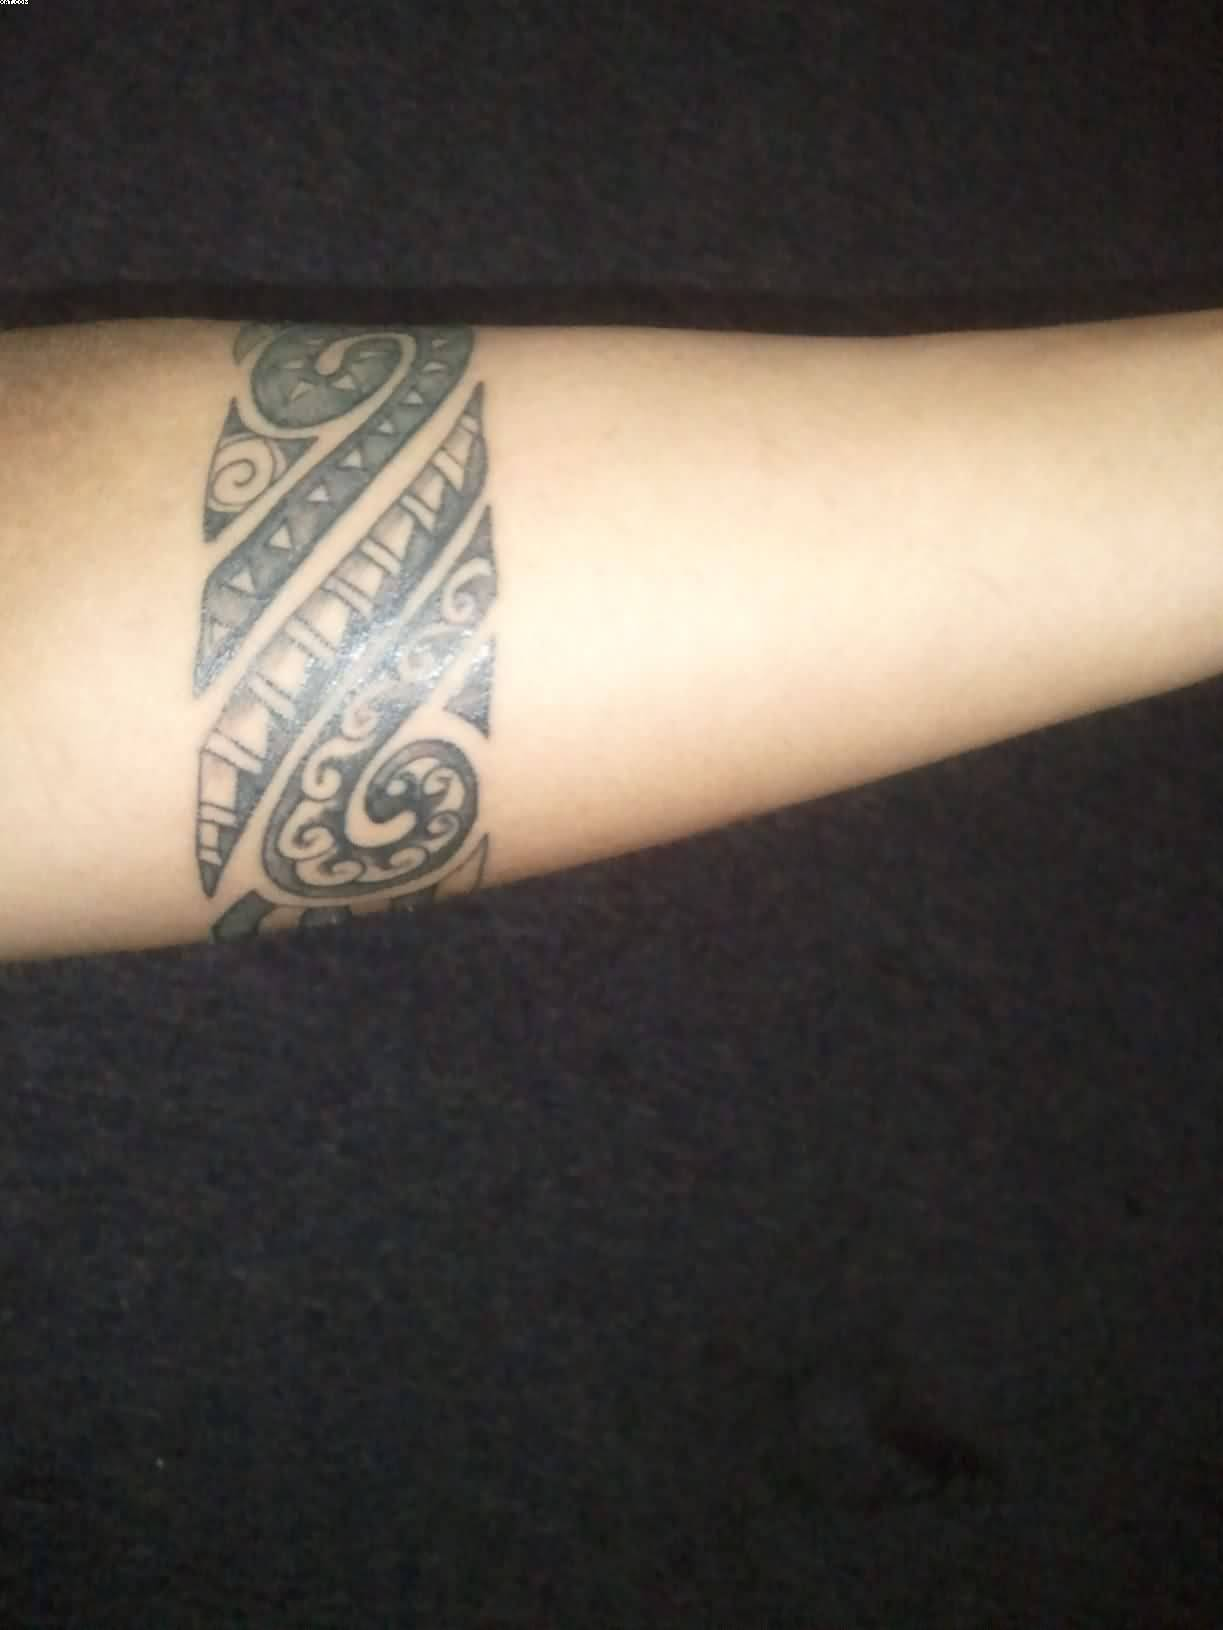 Armband tattoo ideas and armband tattoo designs page 3 for Tattoos in arm